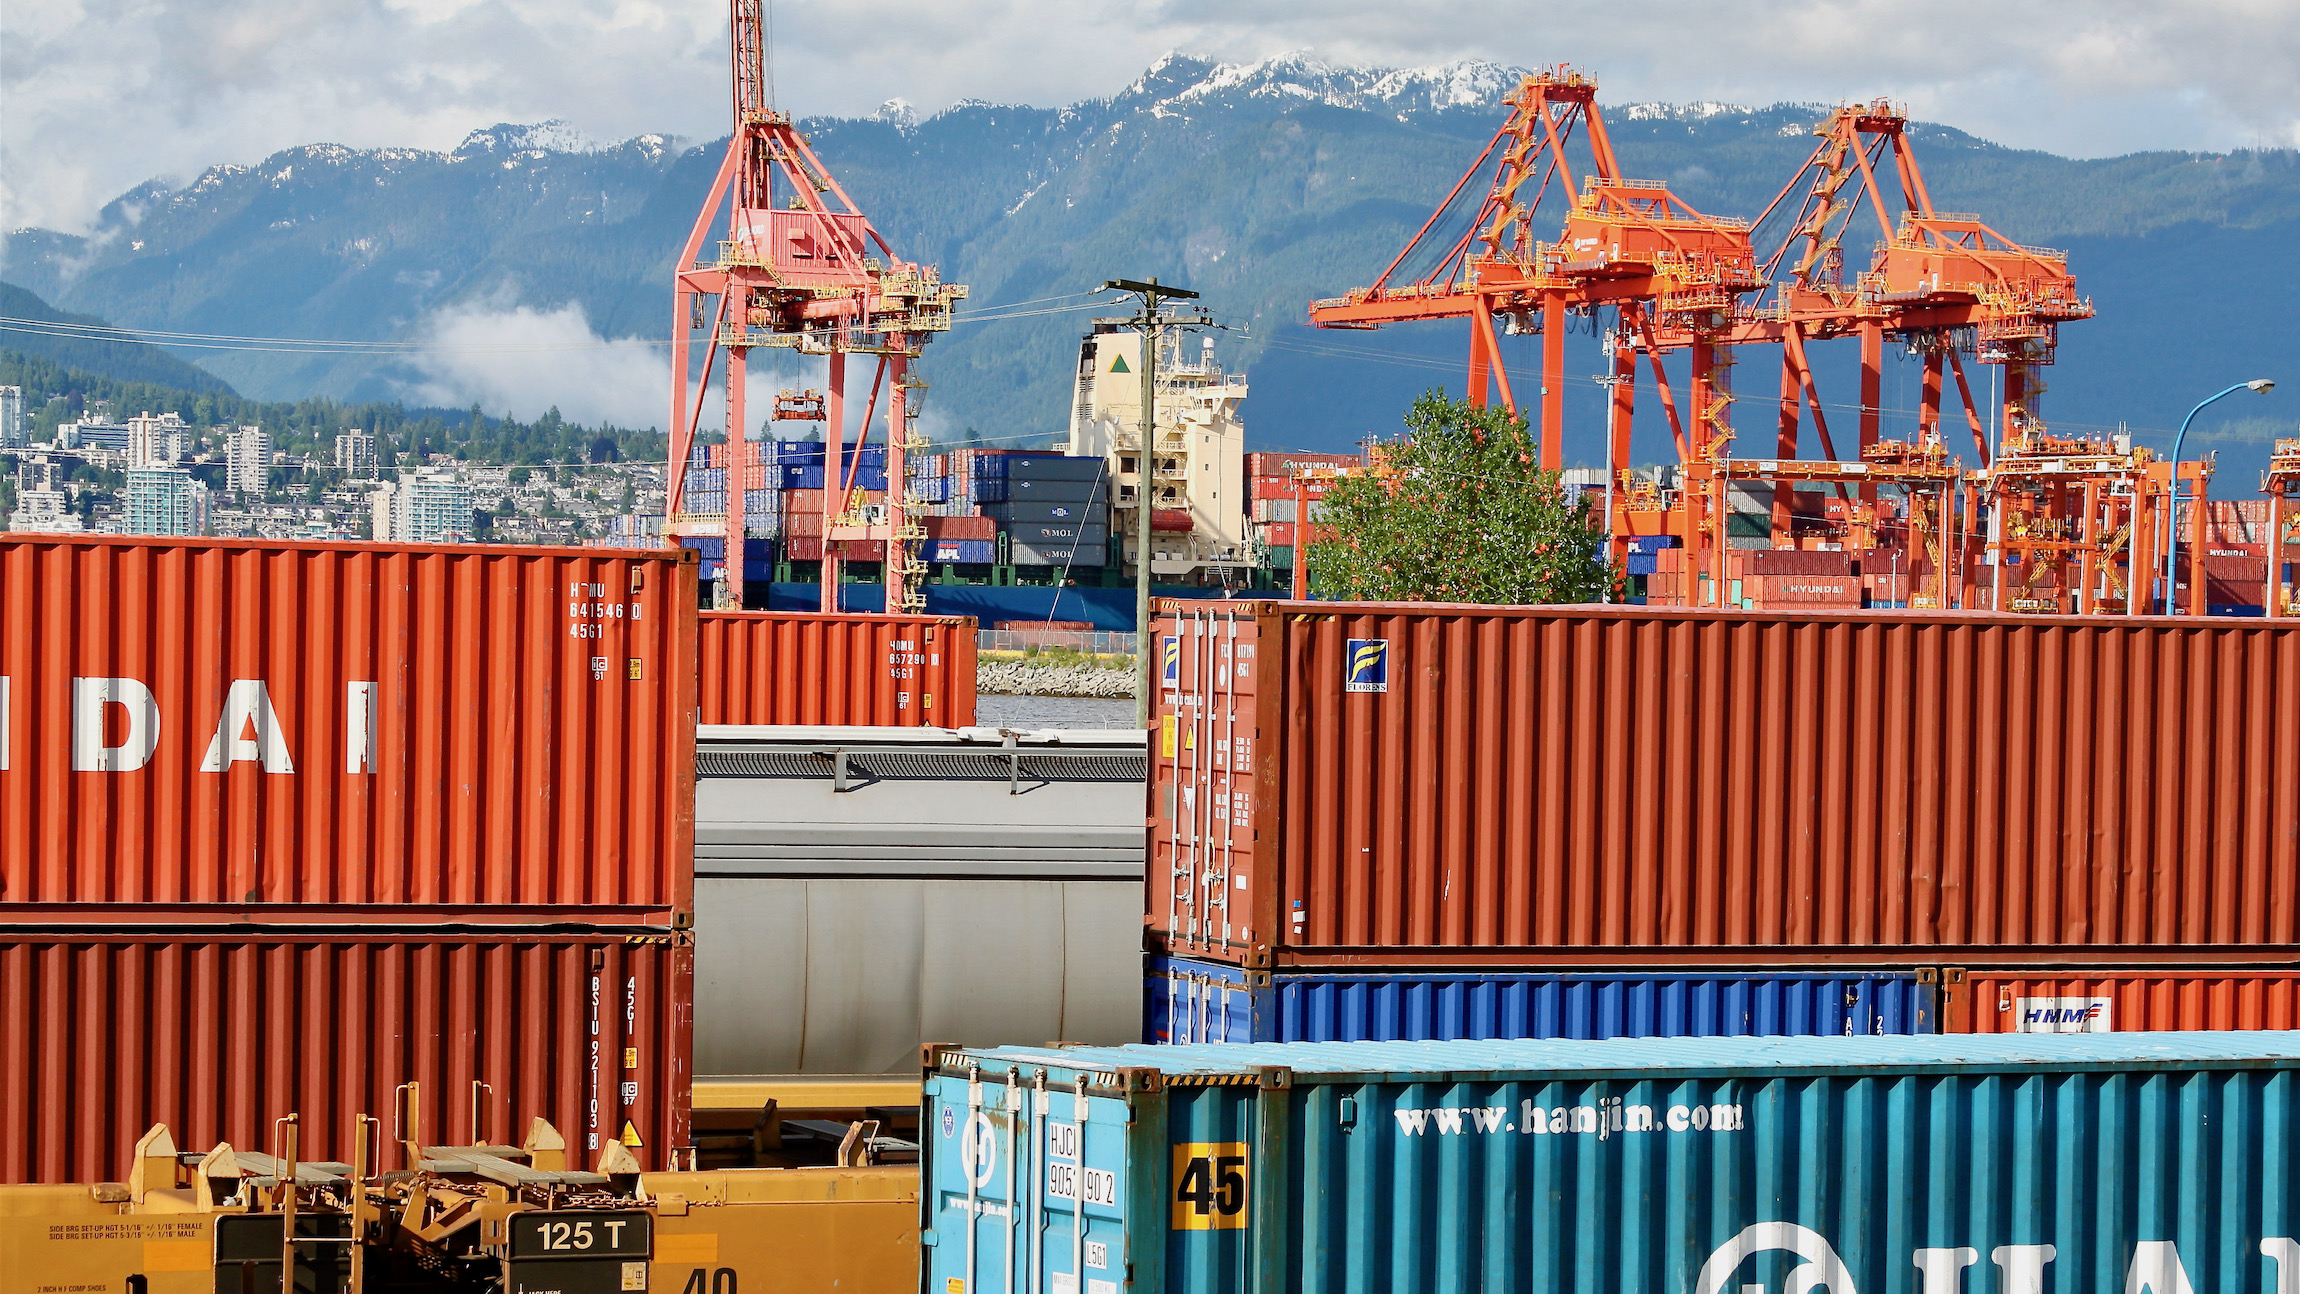 Intermodal containers on trains outside the Port of Vancouver - in the background.